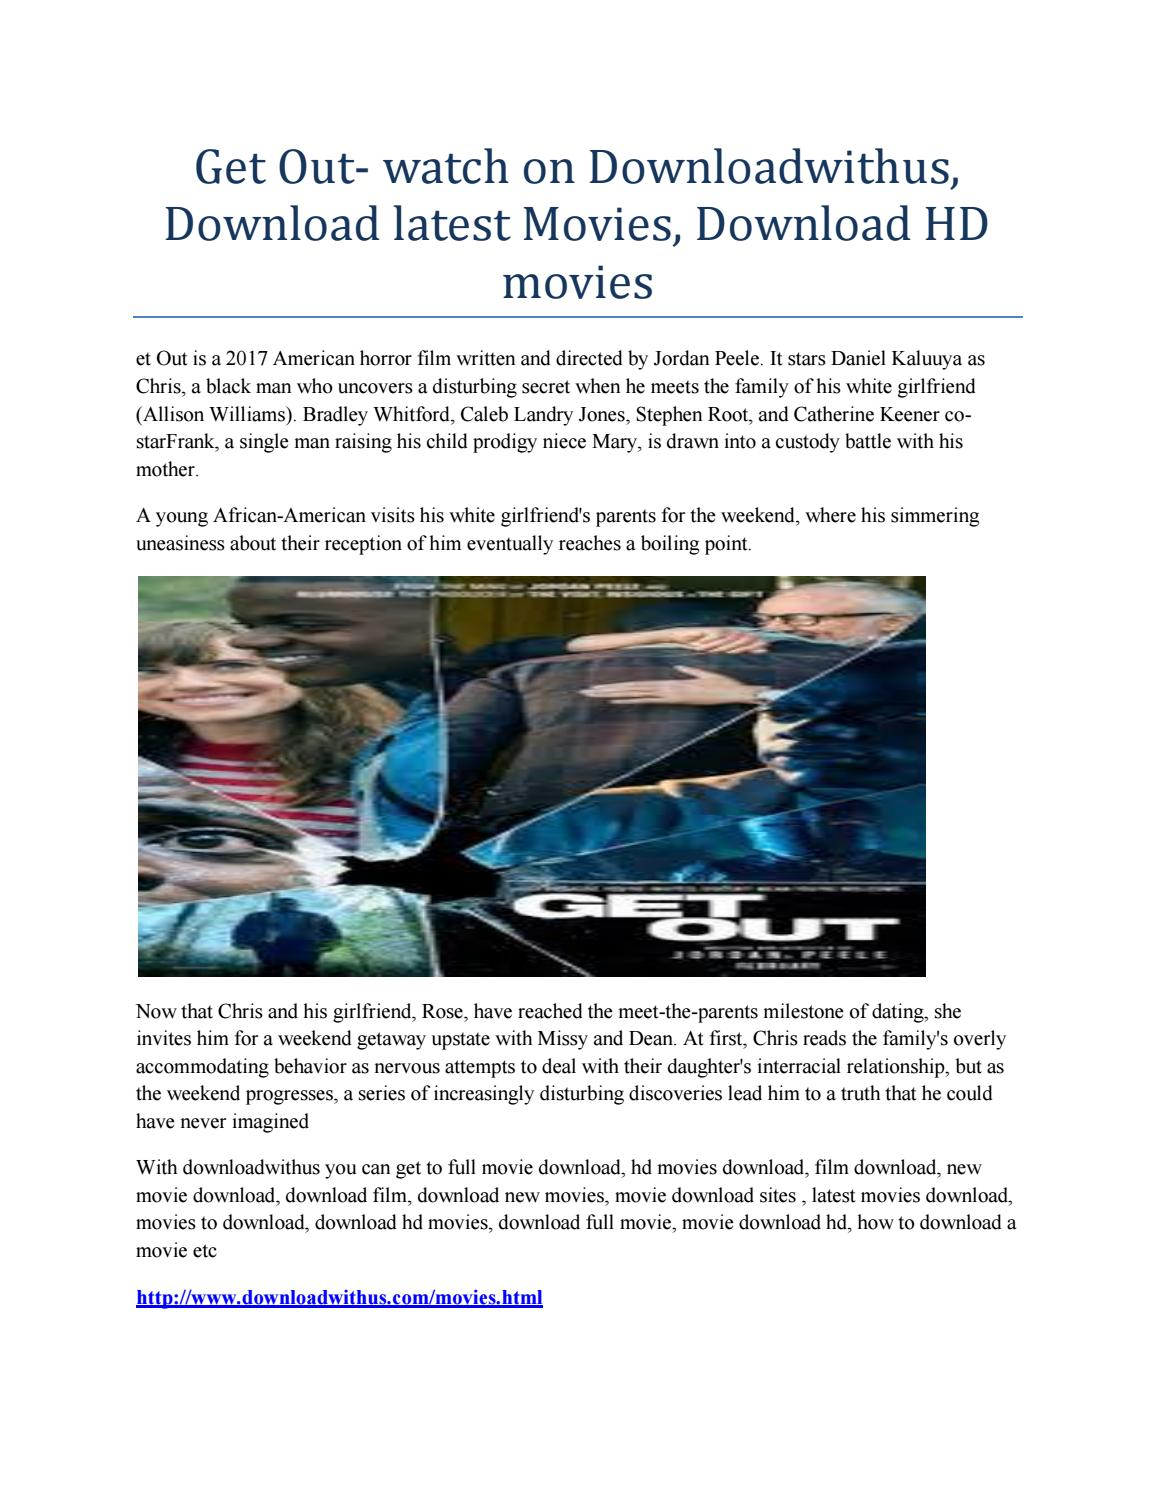 get out- watch on downloadwithus, download latest movies, download